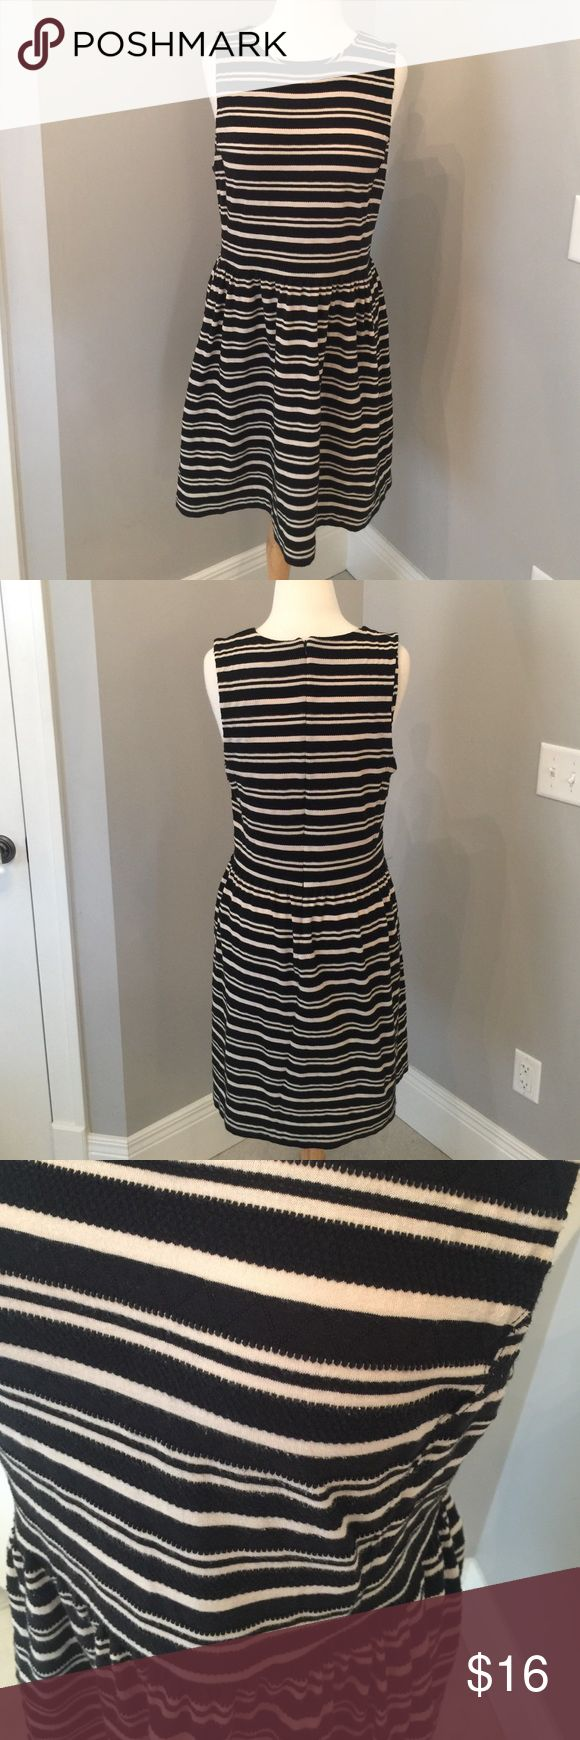 """Striped J Crew dress Crew neck sleeveless dress, zips in the back. 37"""" long, 19"""" wide at bust. 71% cotton, 29% polyester. Does have wash wear as shown in the last pic. From the outlet J. Crew Factory Dresses"""